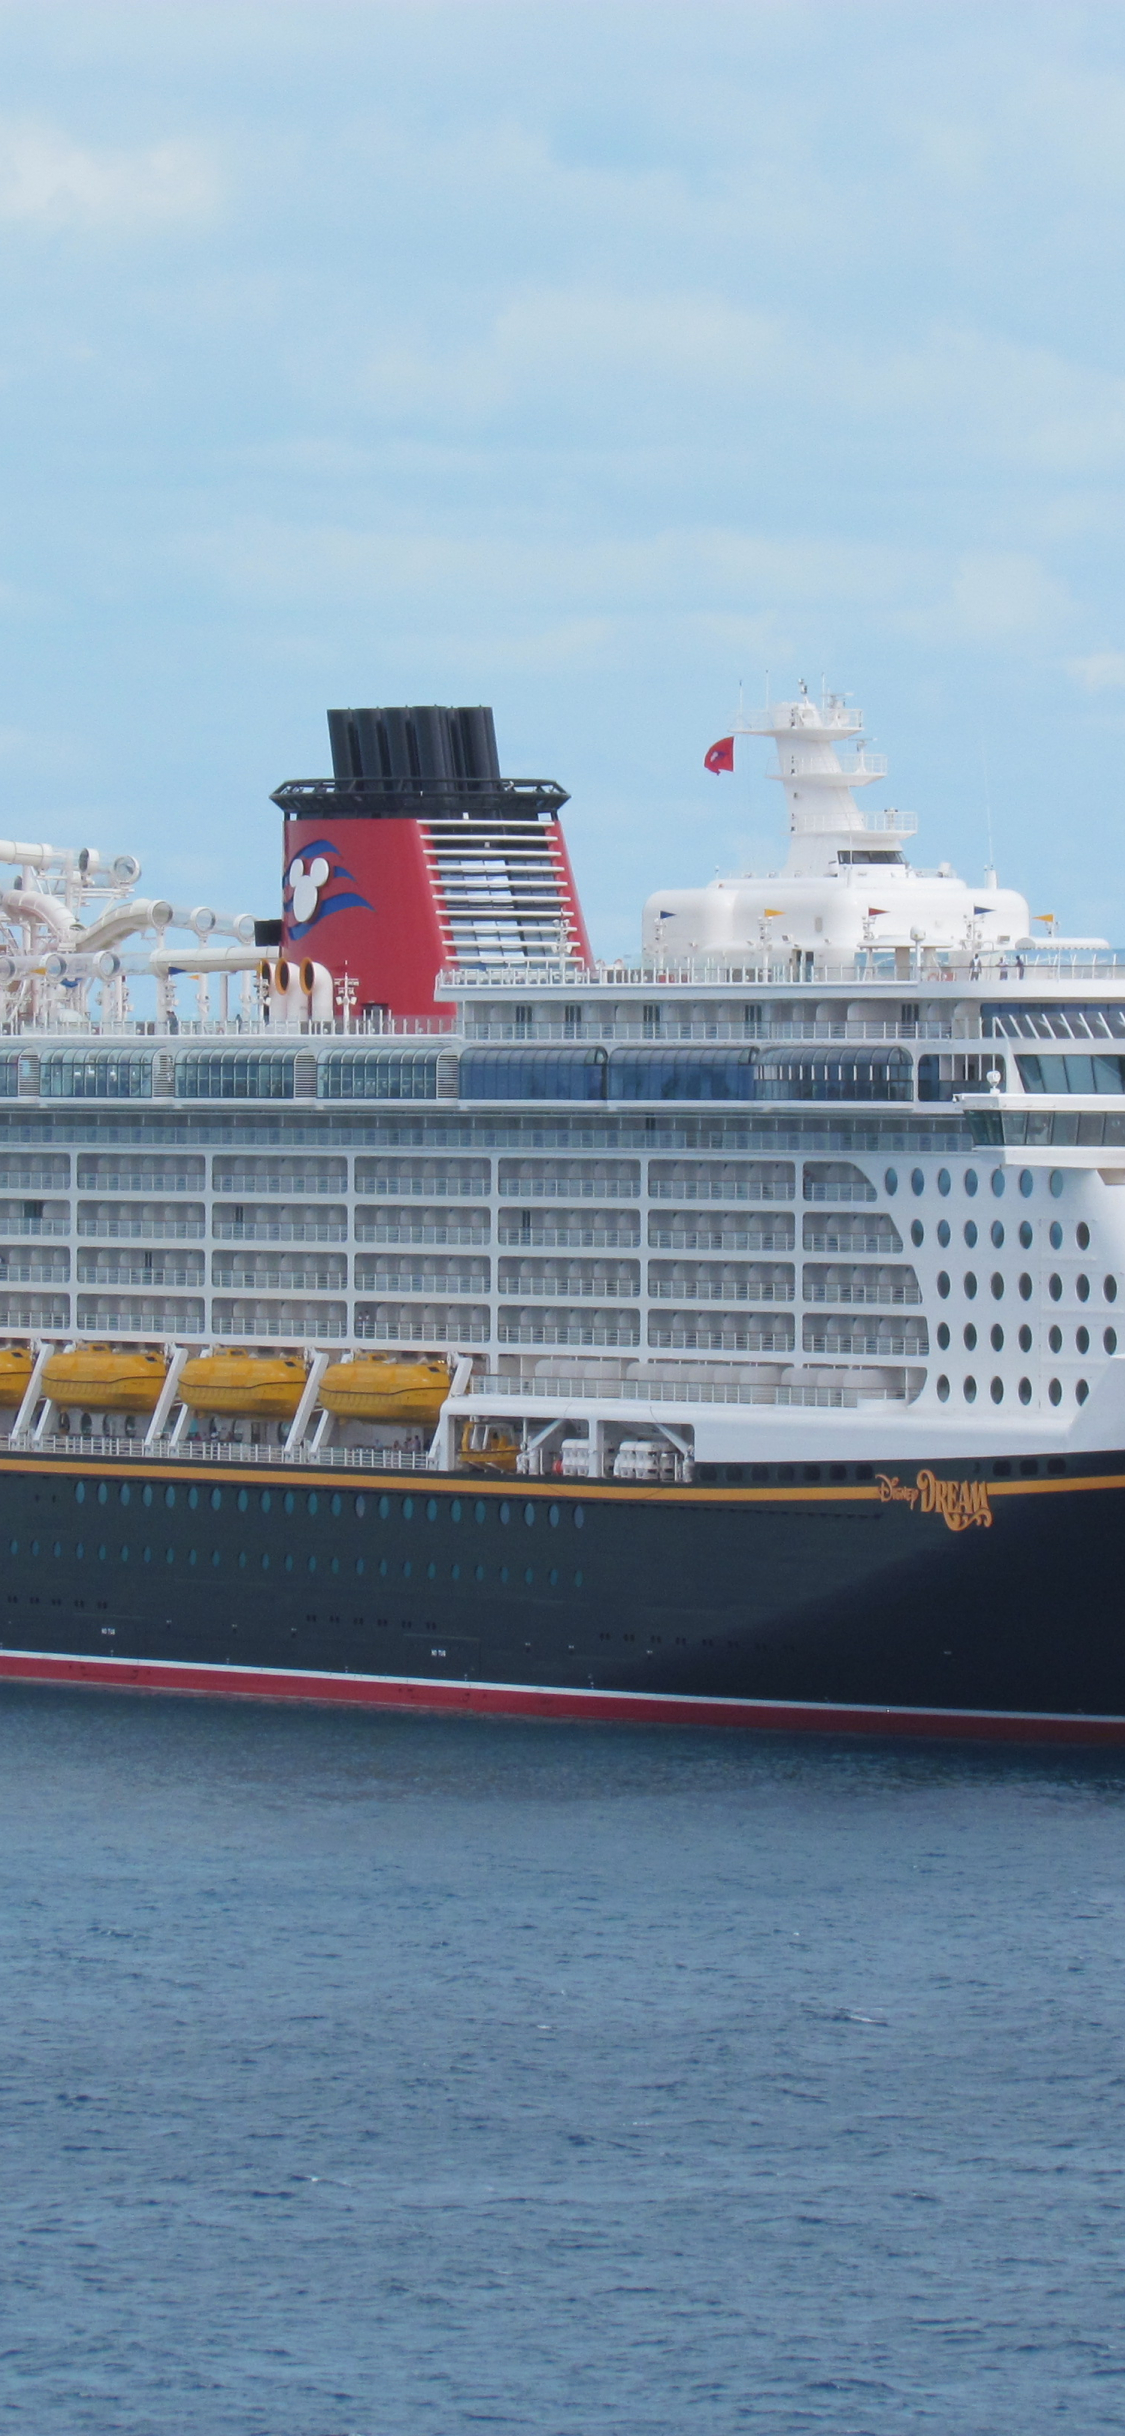 Free Download Displaying 19 Images For Disney Dream Cruise